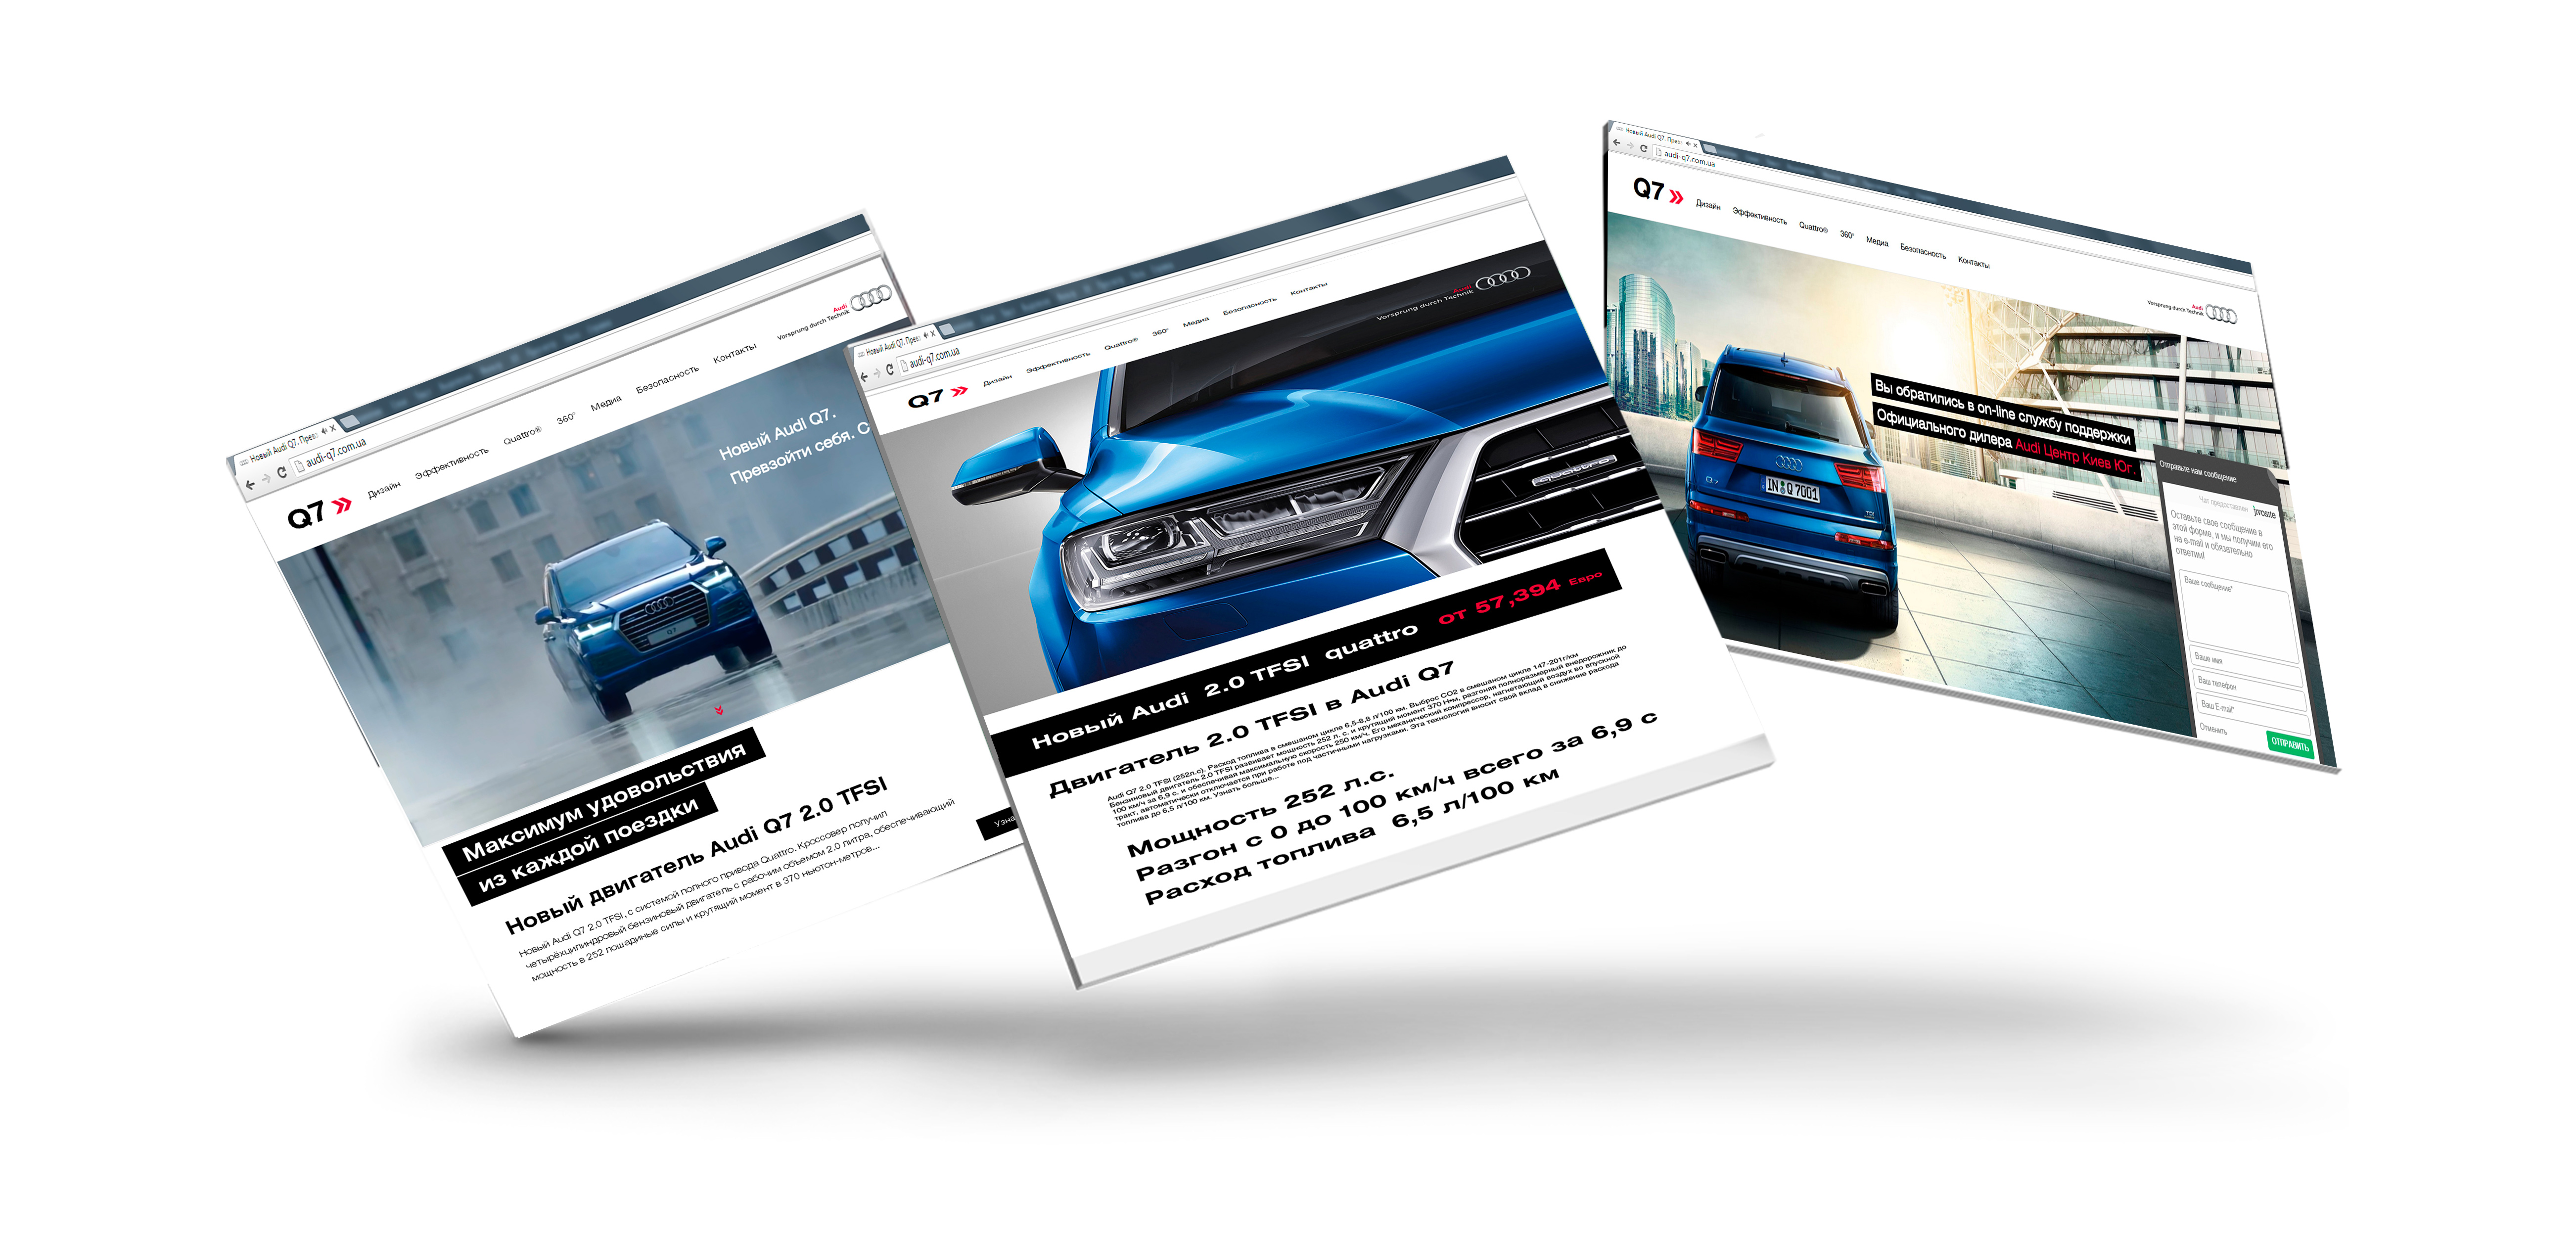 Strategies to promote the website Audi Q7 efficiency